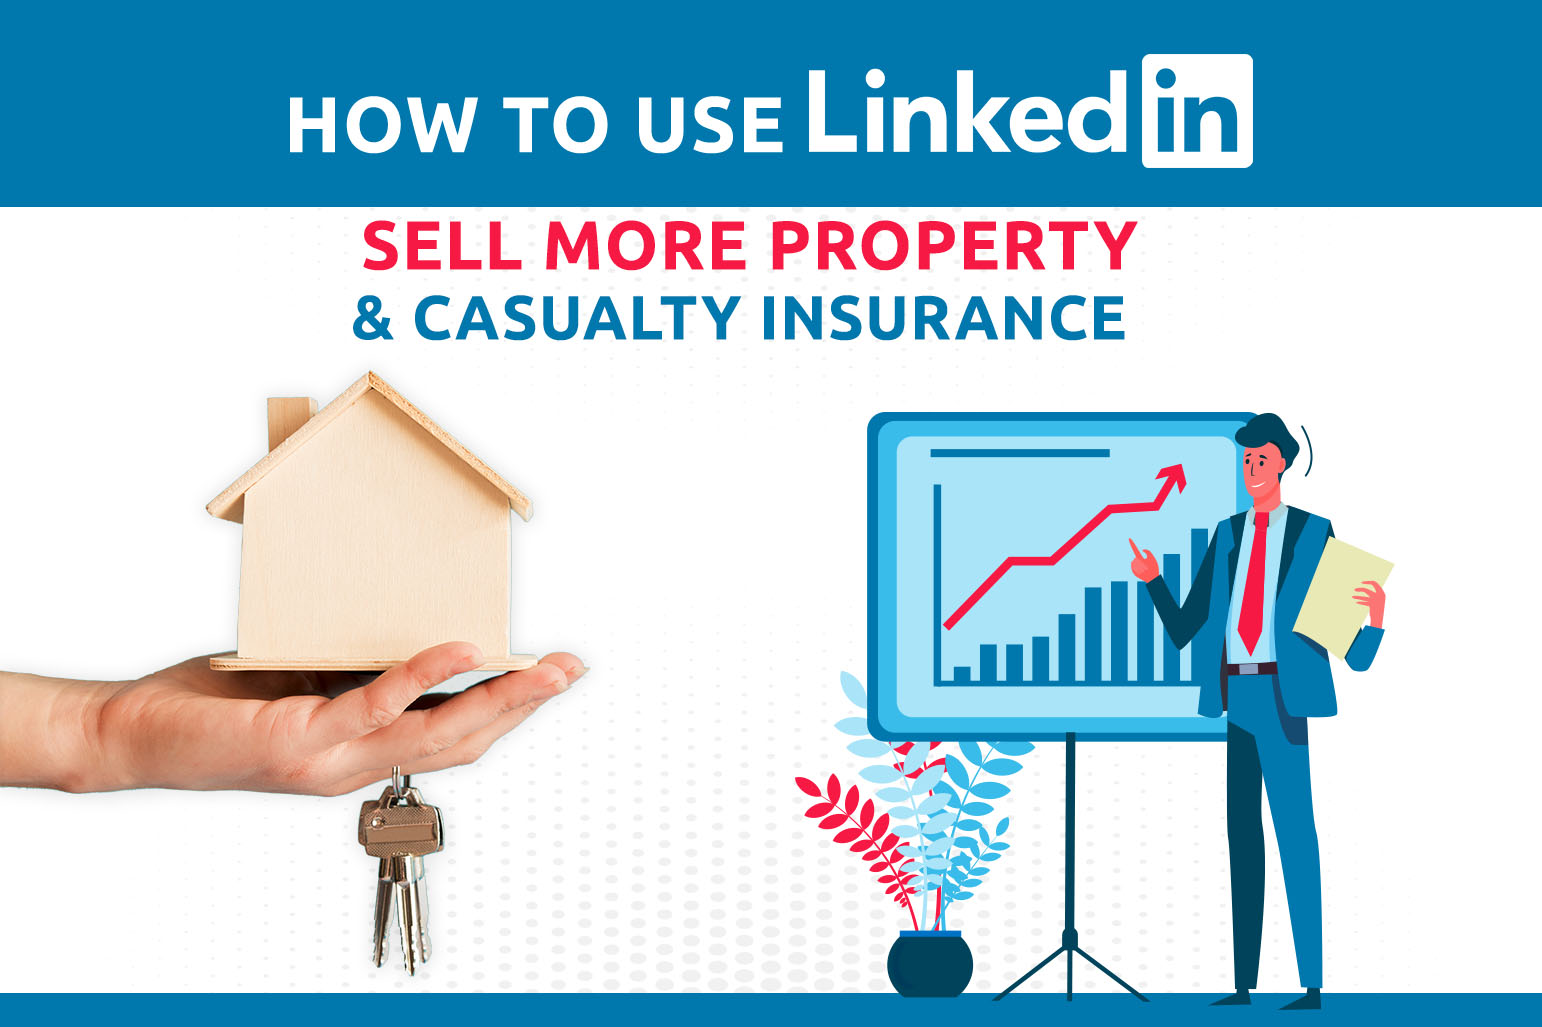 How To Use LinkedIn To Sell More Property & Casualty Insurance